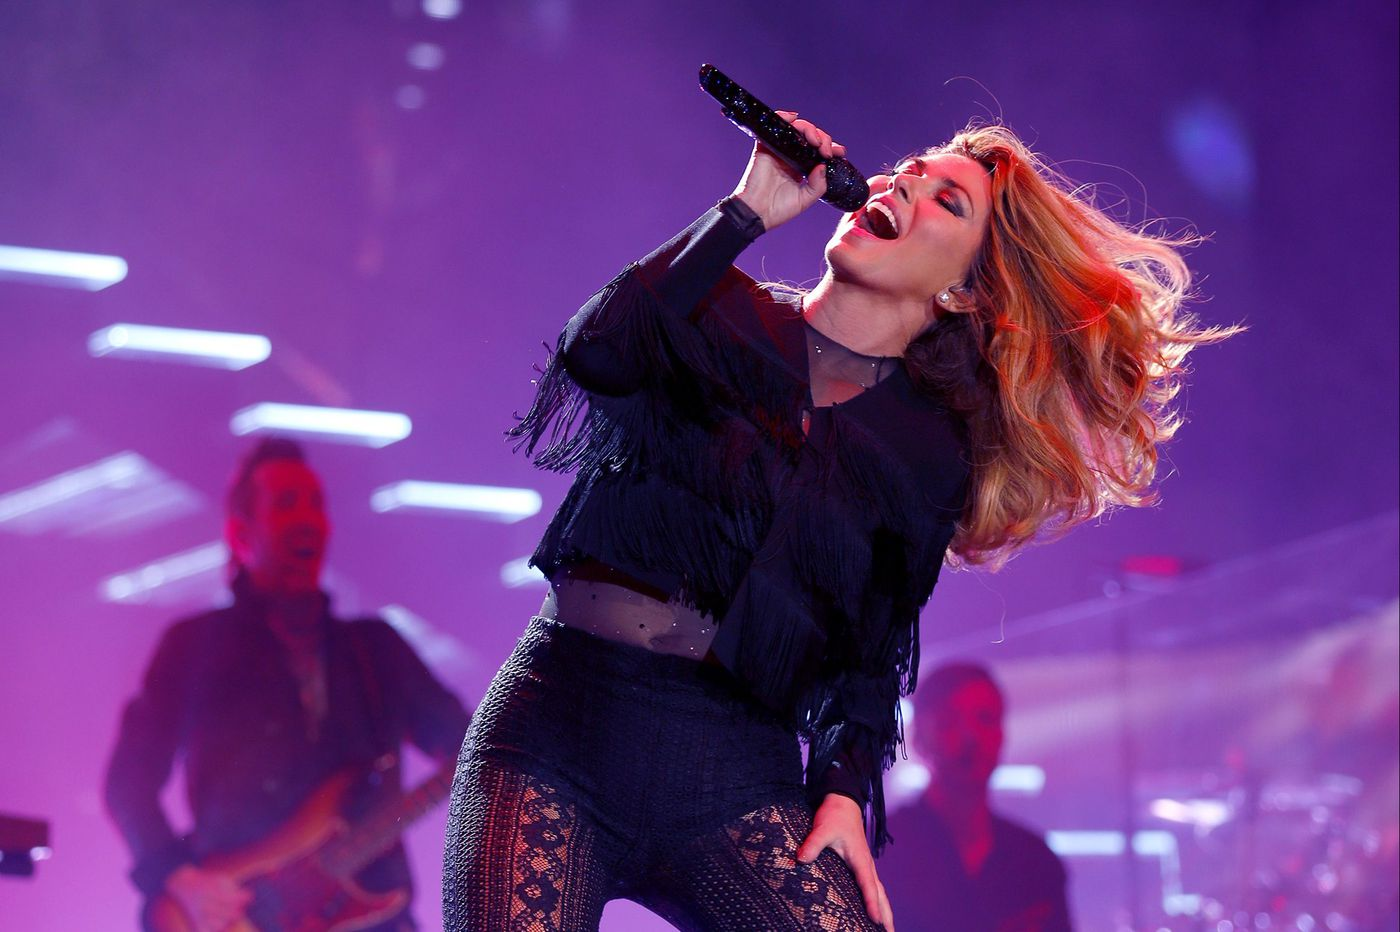 Shania Twain is still a rock star at the Wells Fargo Center